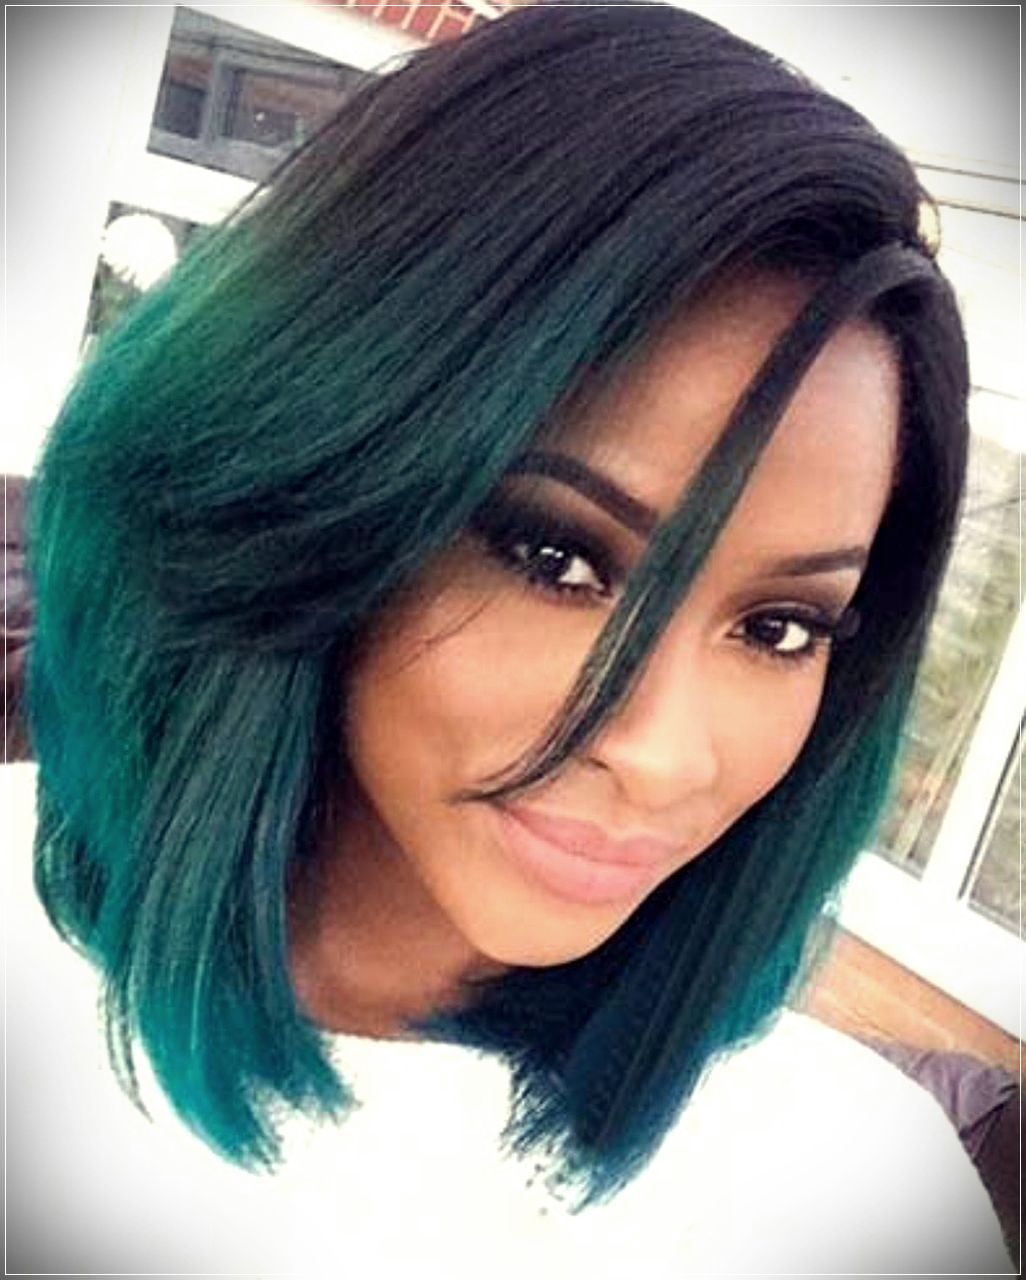 Some useful ombre hair ideas for short hair - ombre hair ideas for short hair 14